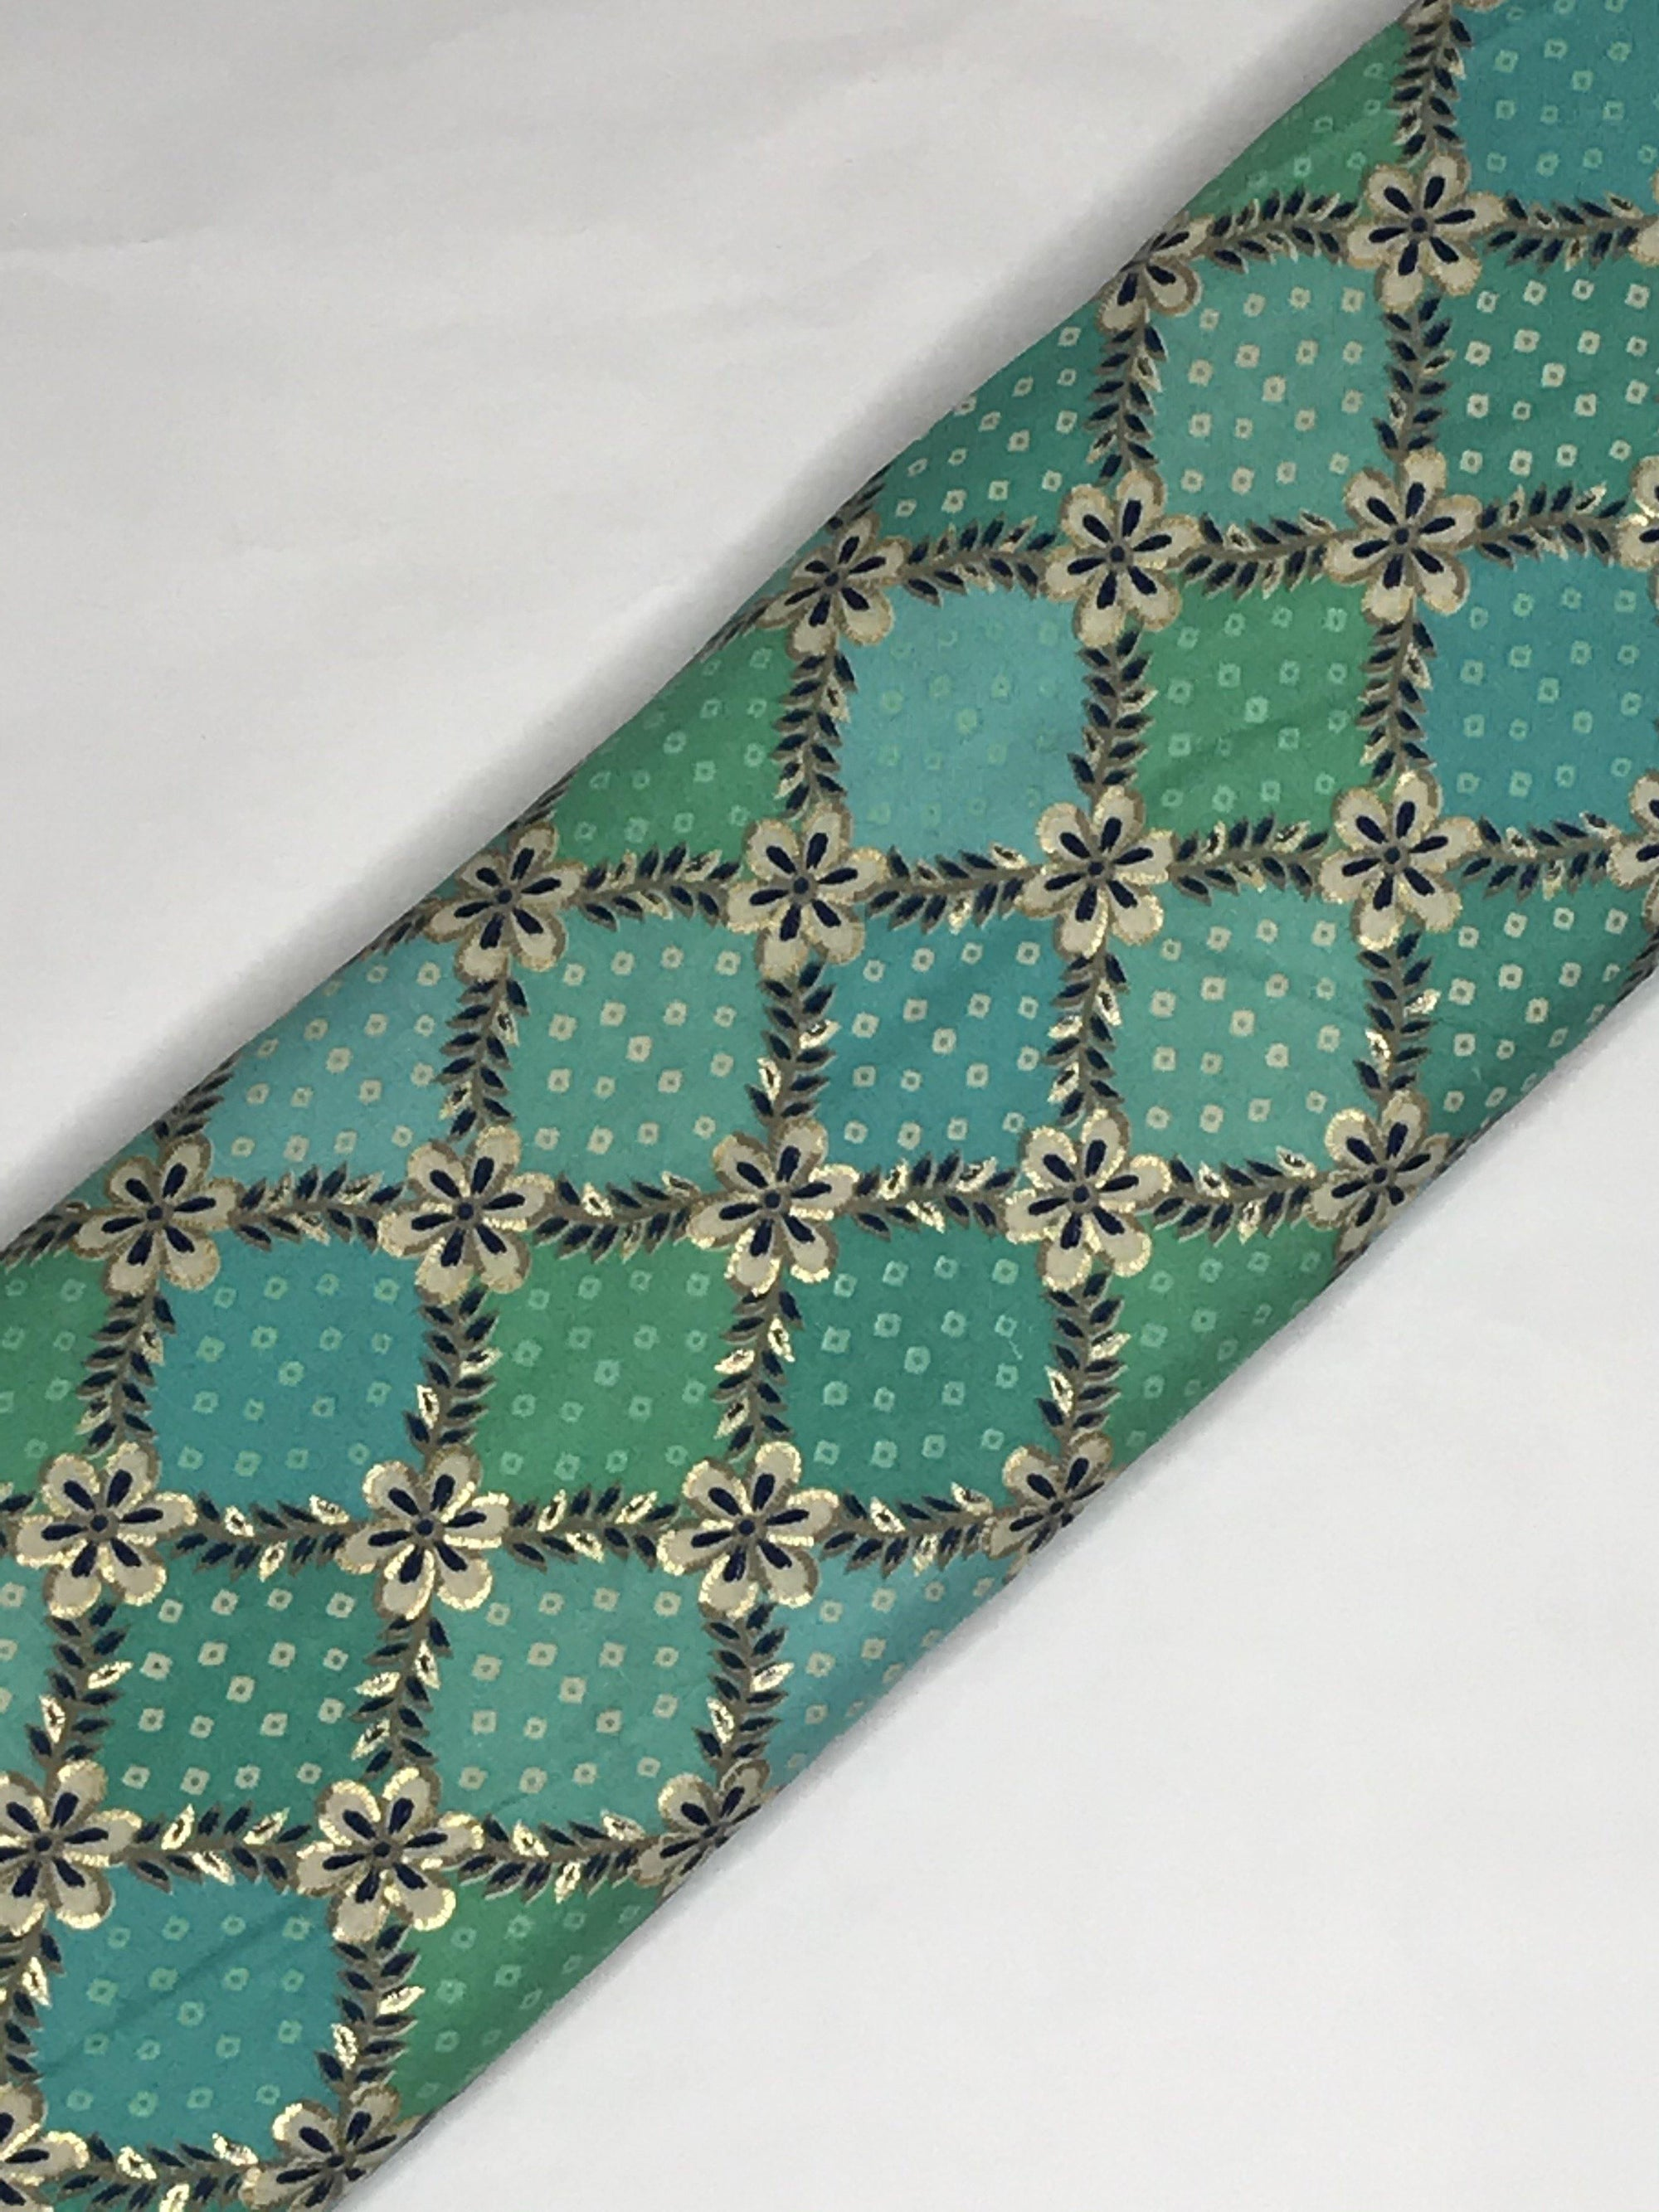 Shades of Green Rayon Gold Foil Bandhani Style Printed Fabric